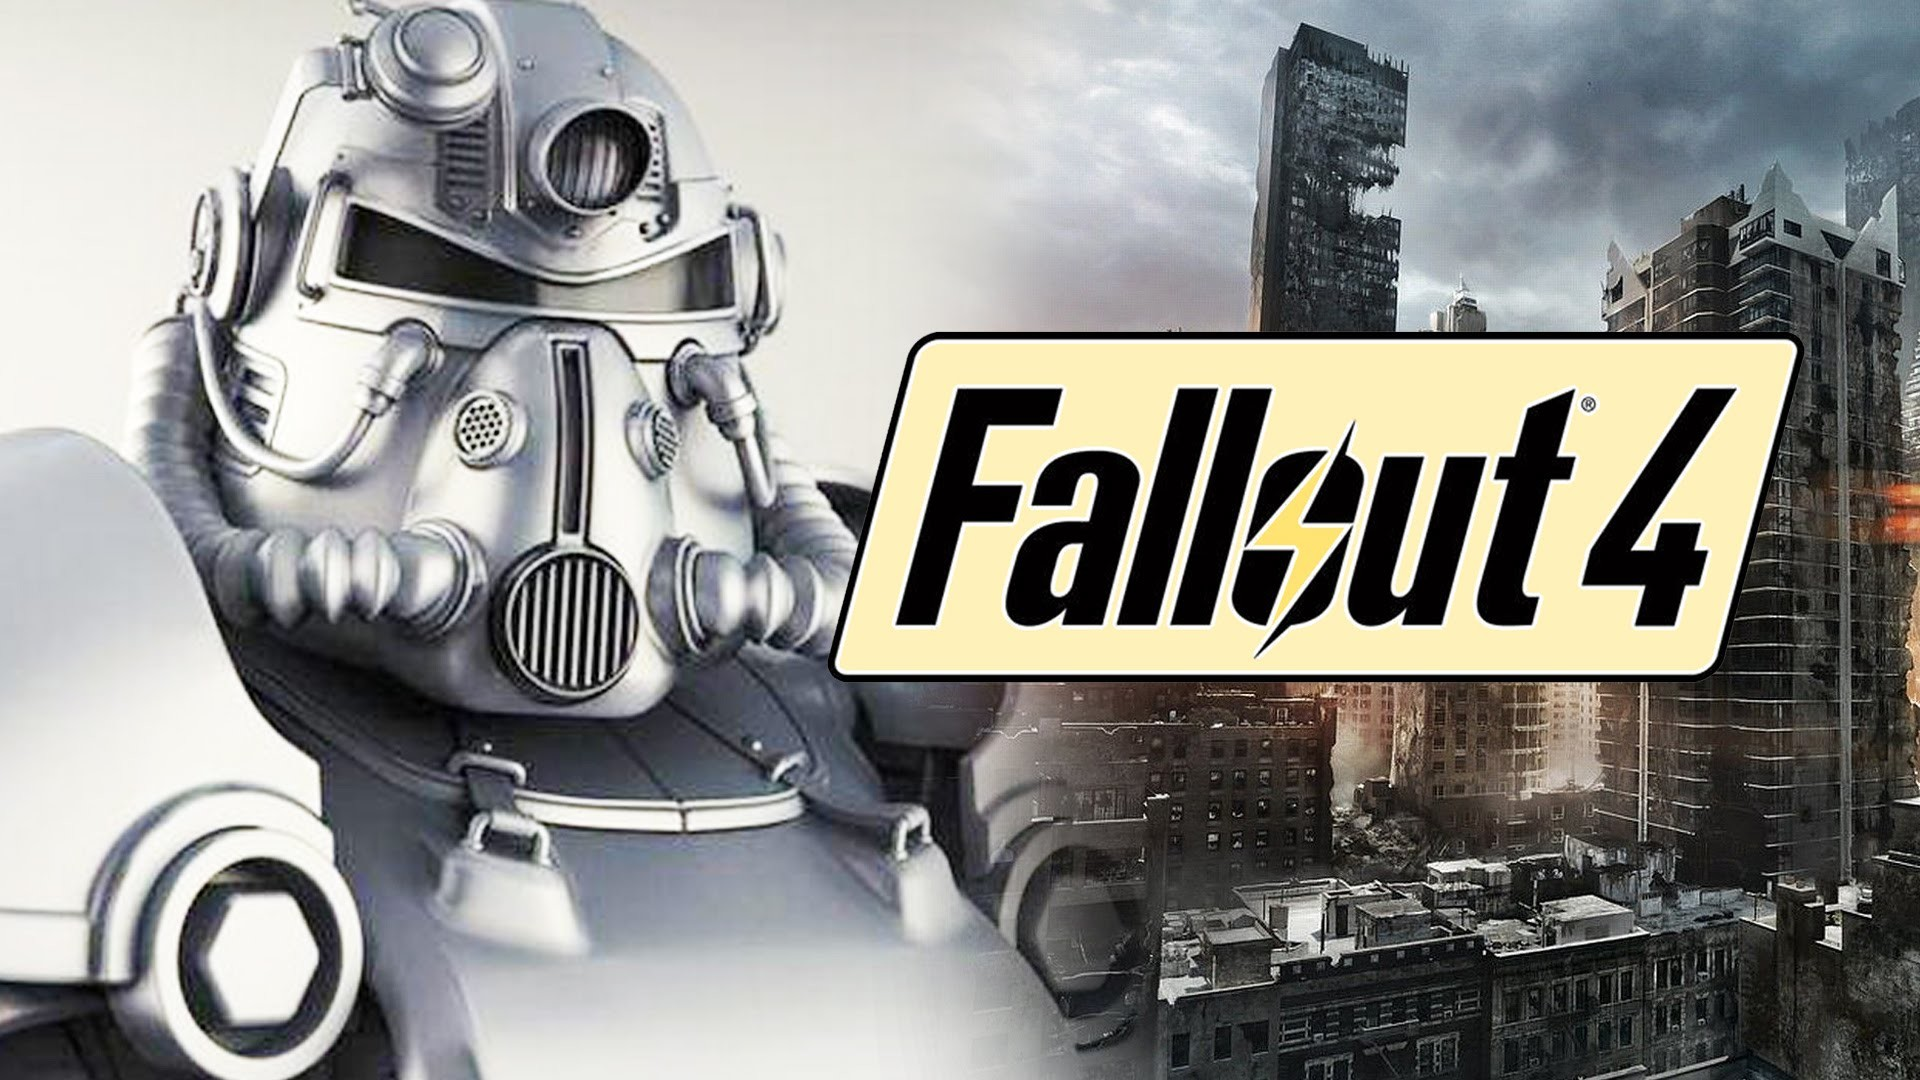 Fallout 4: Android Factions, Underwater Power Armor & Building Settlements  on the Water; DLC!